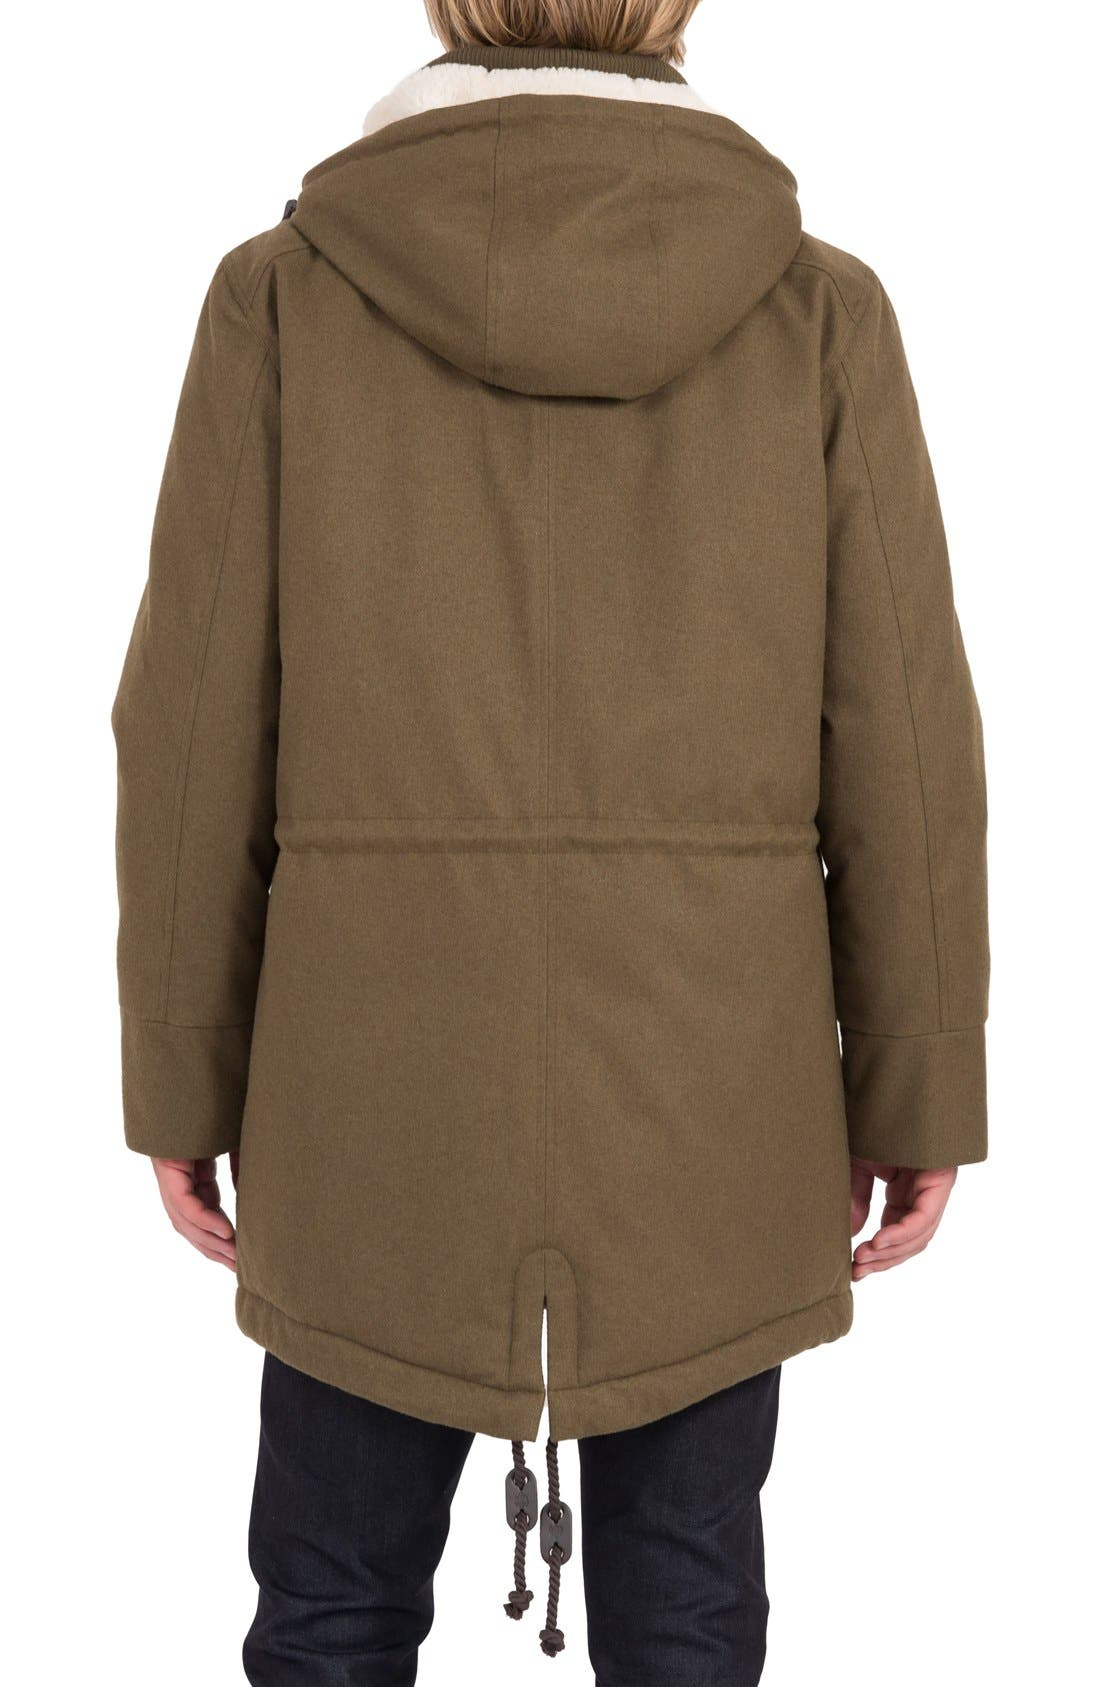 Fishtail Parka,                             Alternate thumbnail 2, color,                             Military